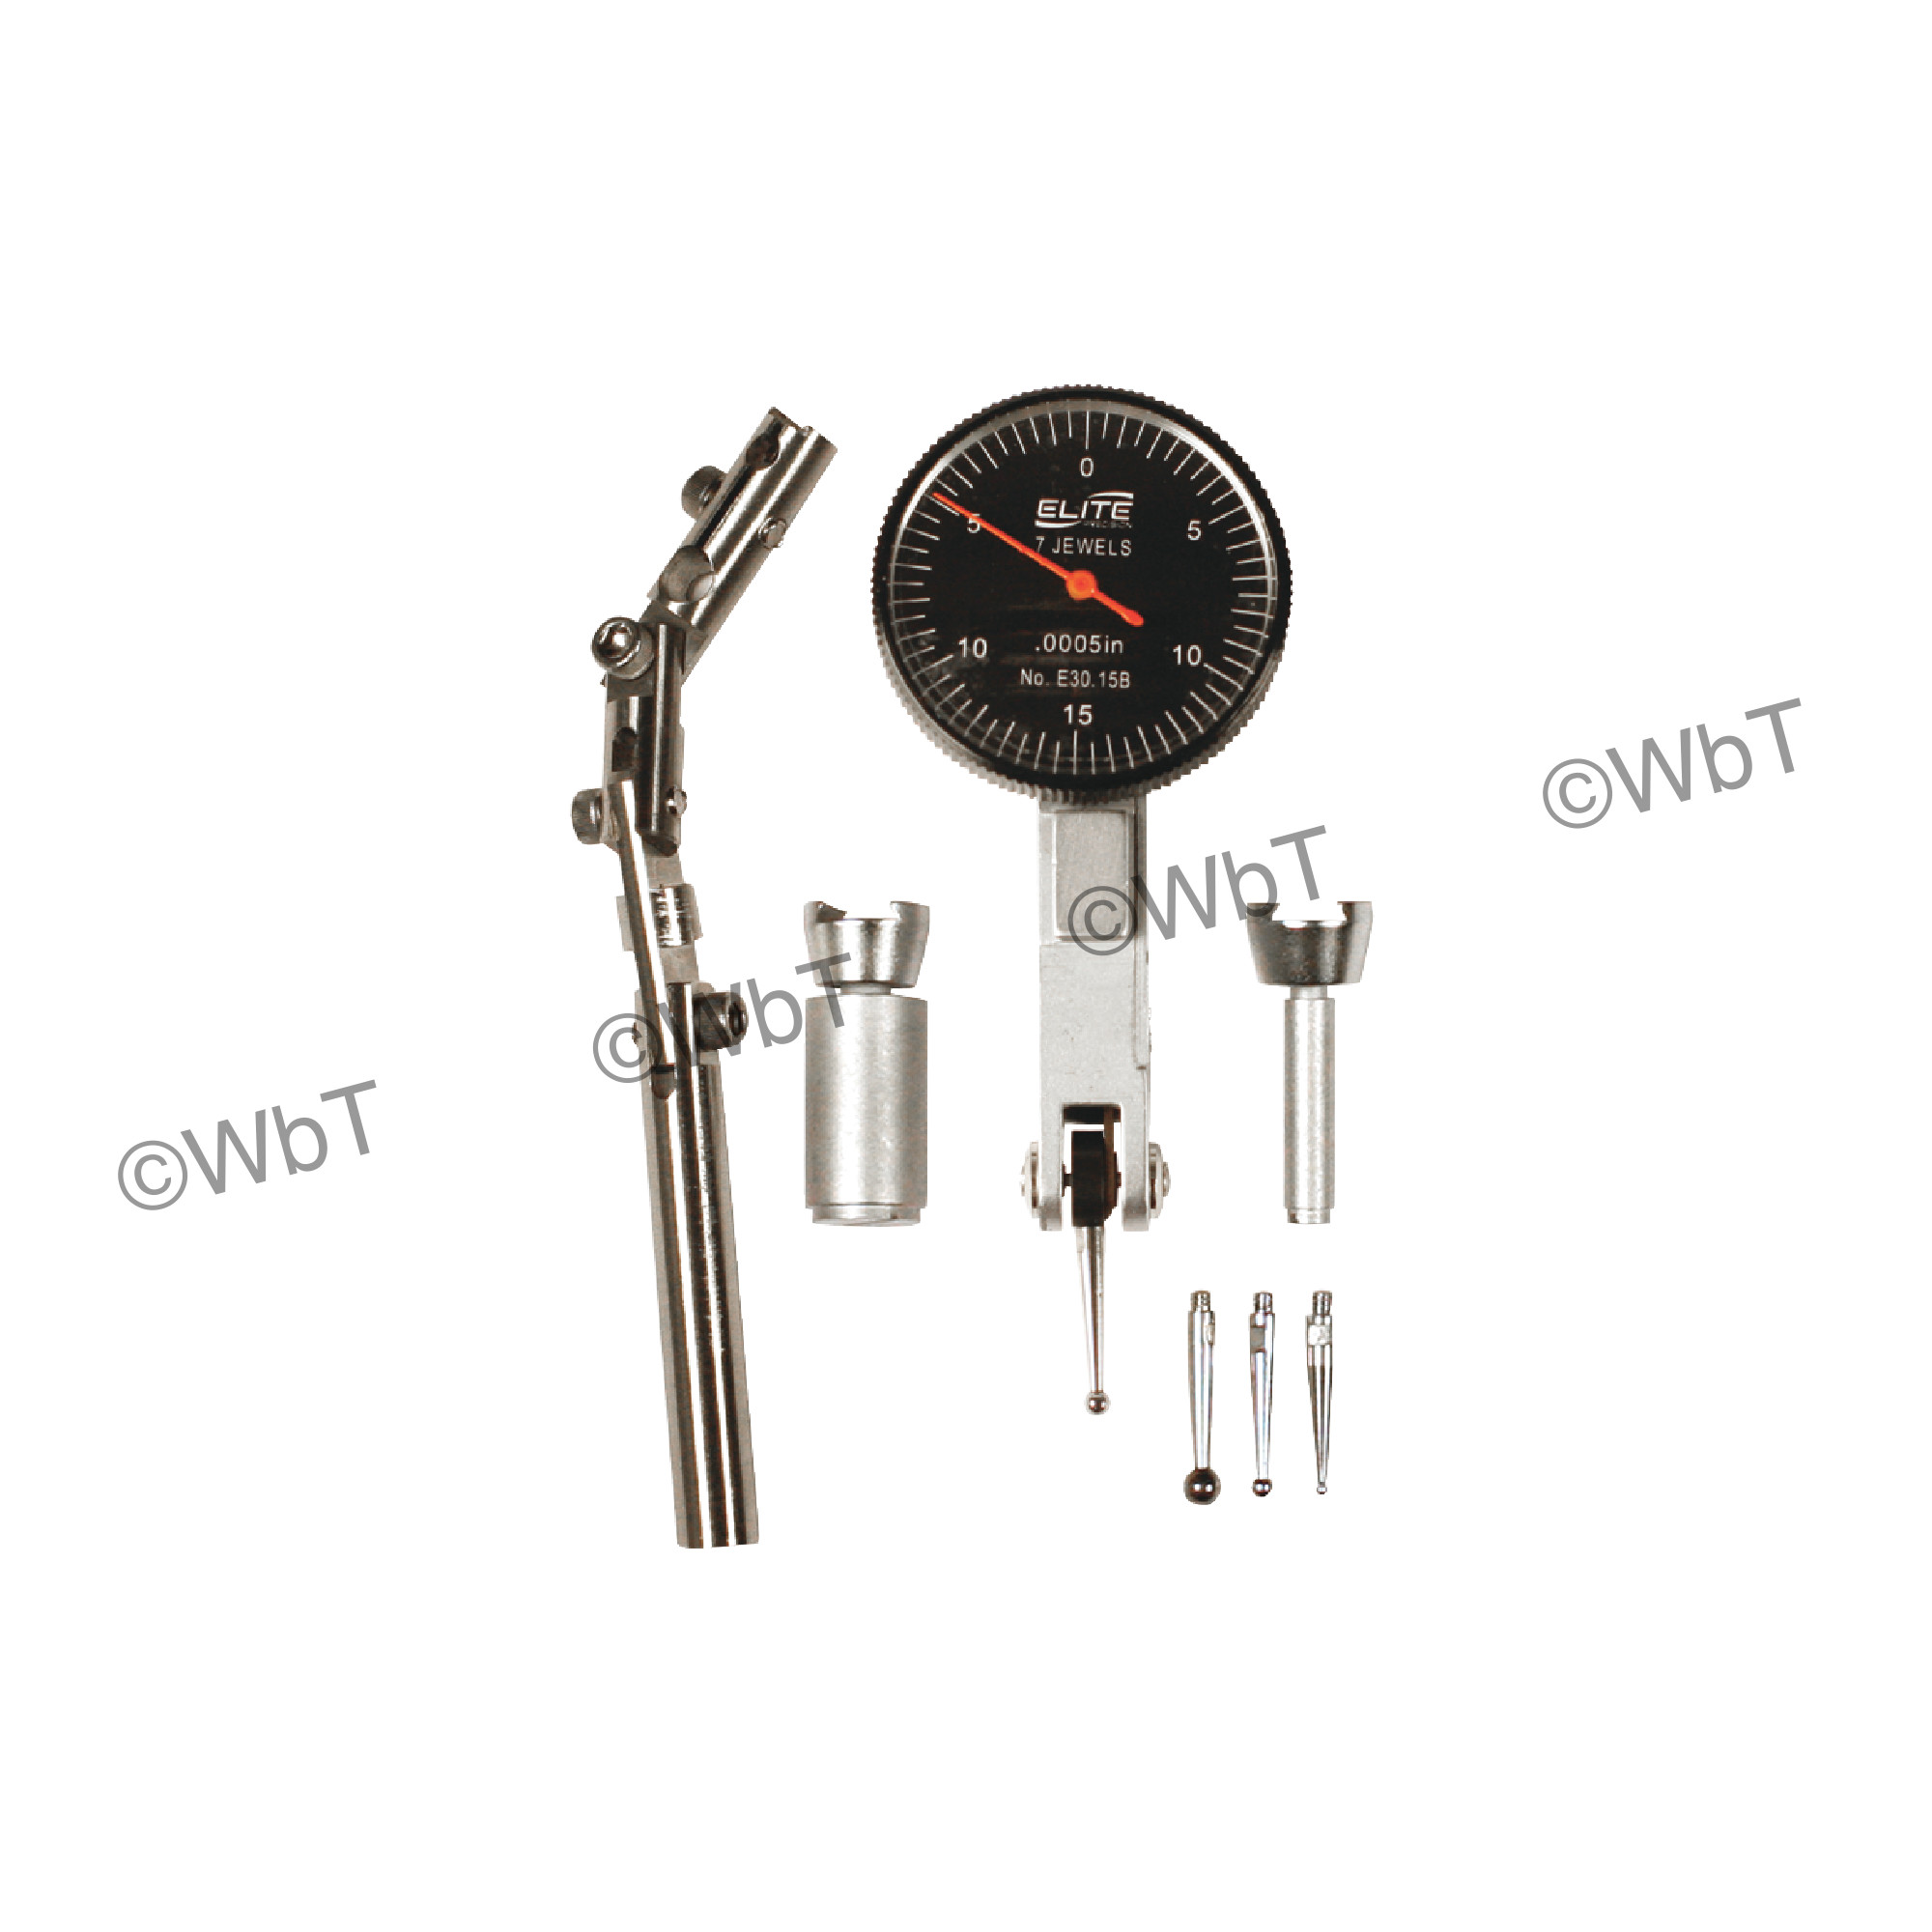 Elite Precision Test Indicator with USA Axial Support